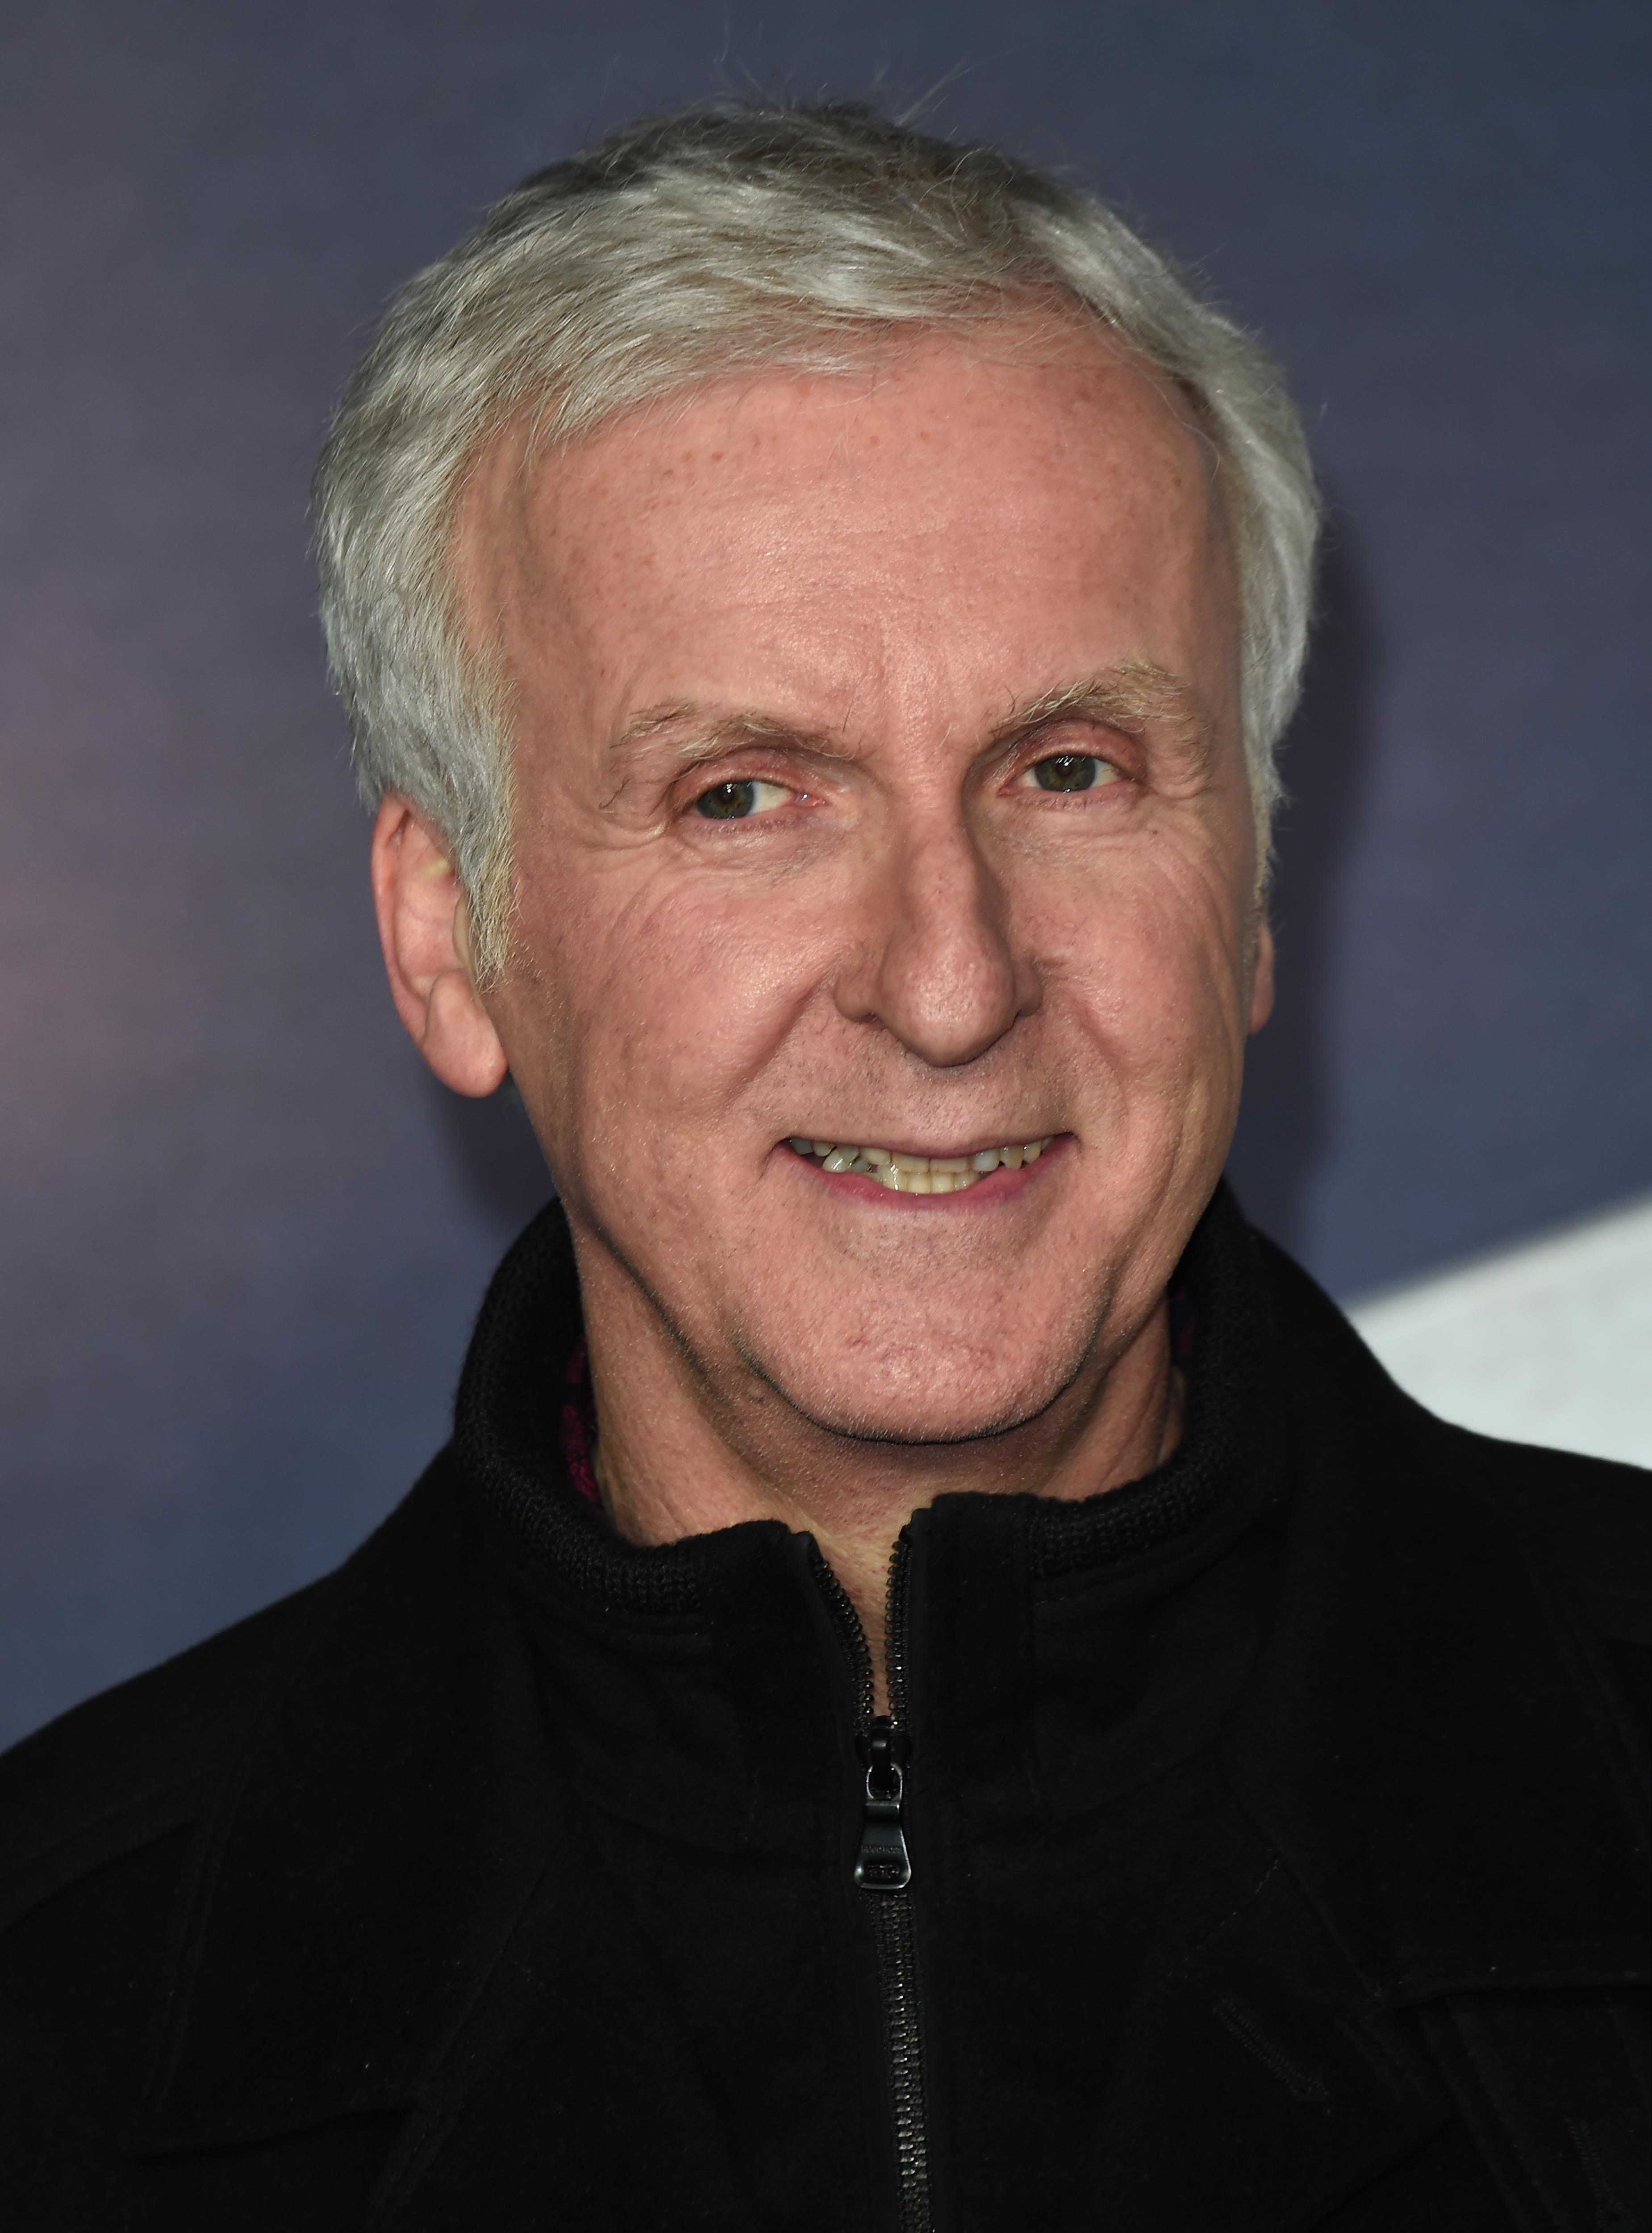 Image Source: Getty Images | A photo of James Cameron